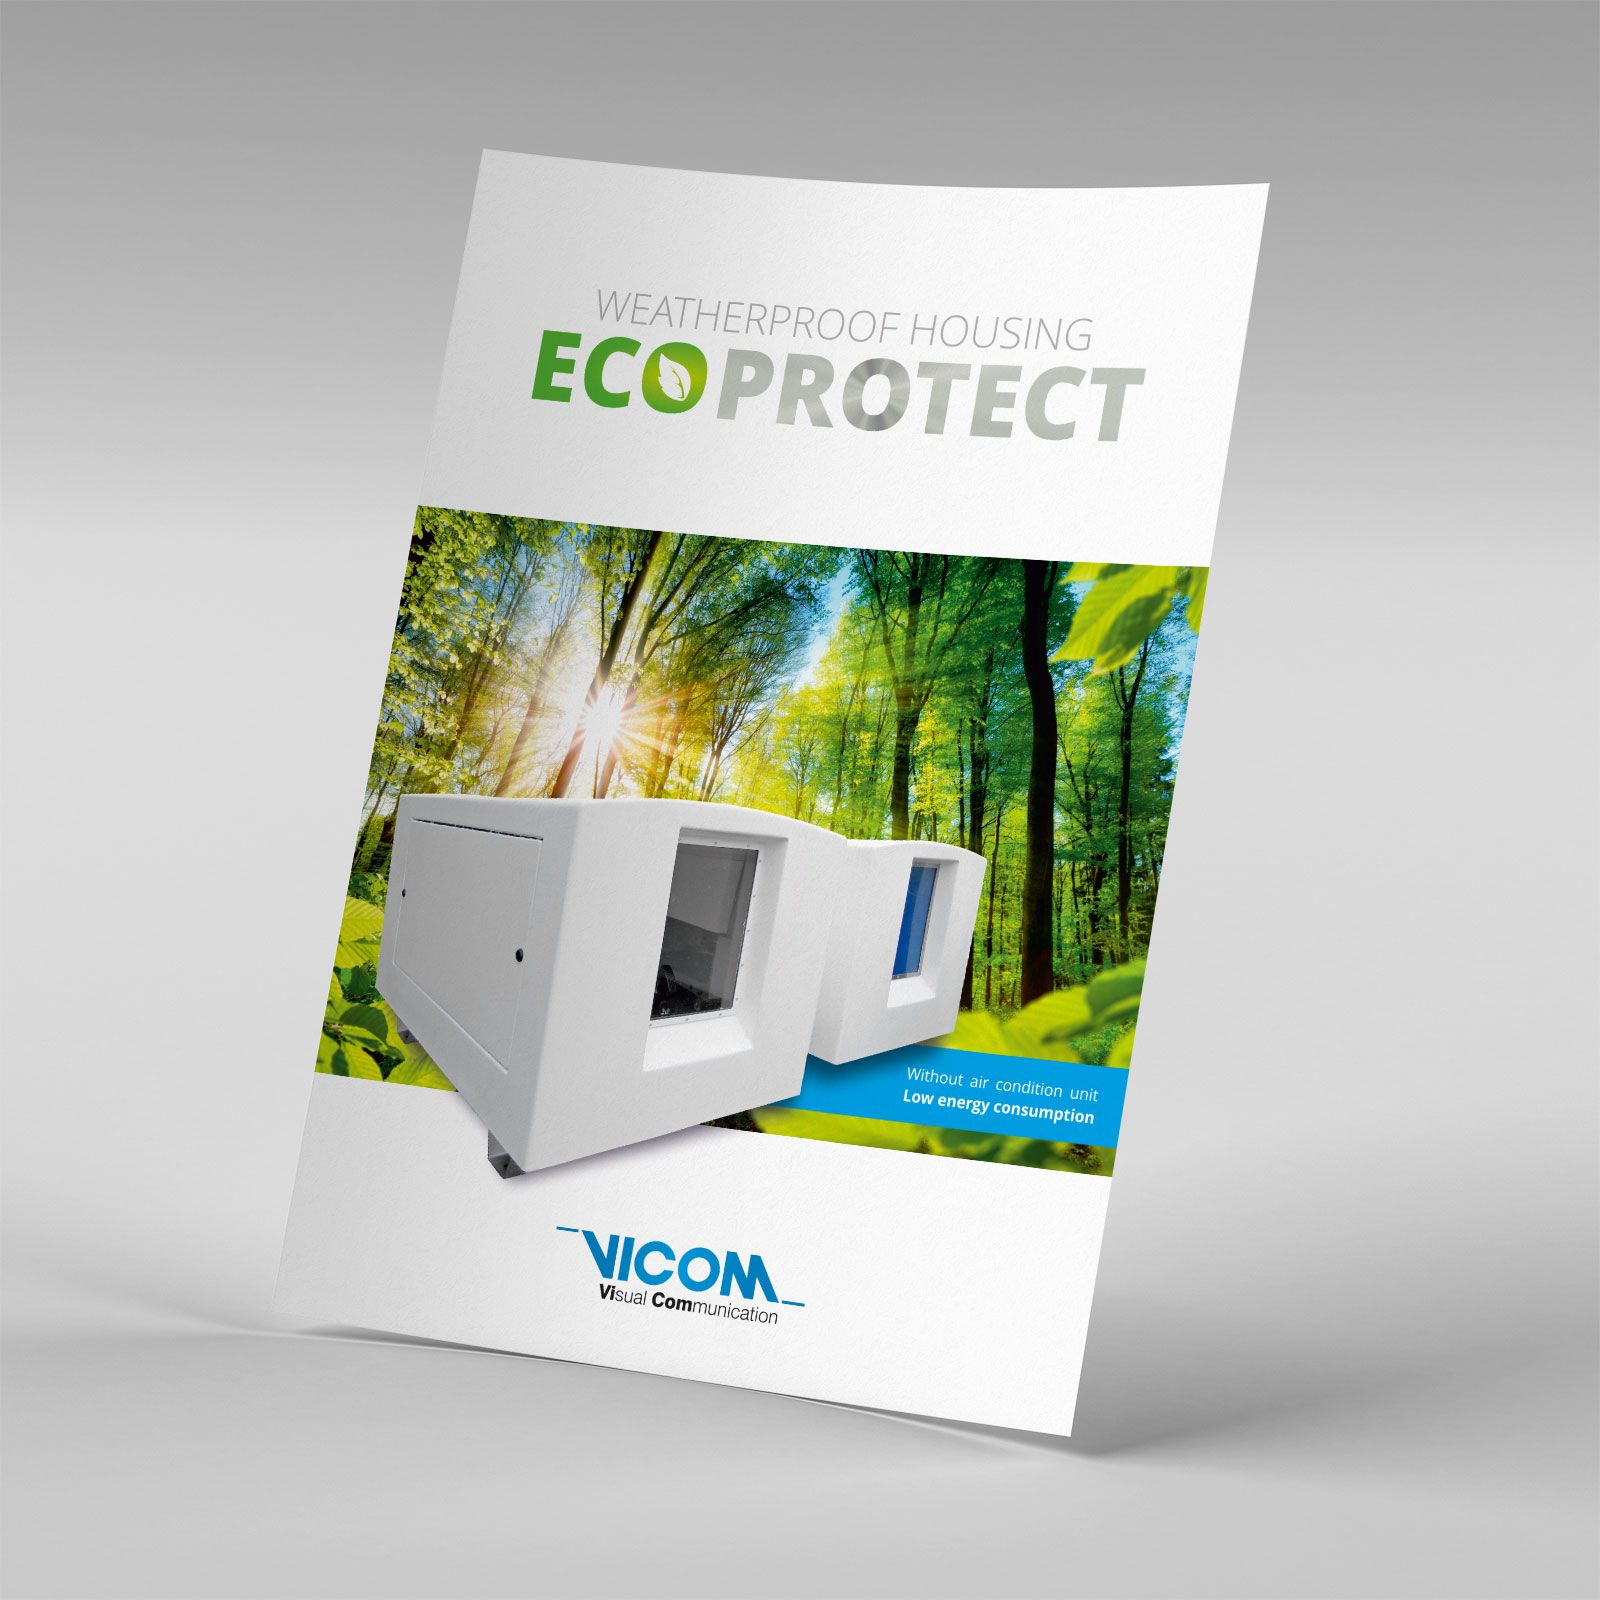 VICOM Eco Protect Weather Housing